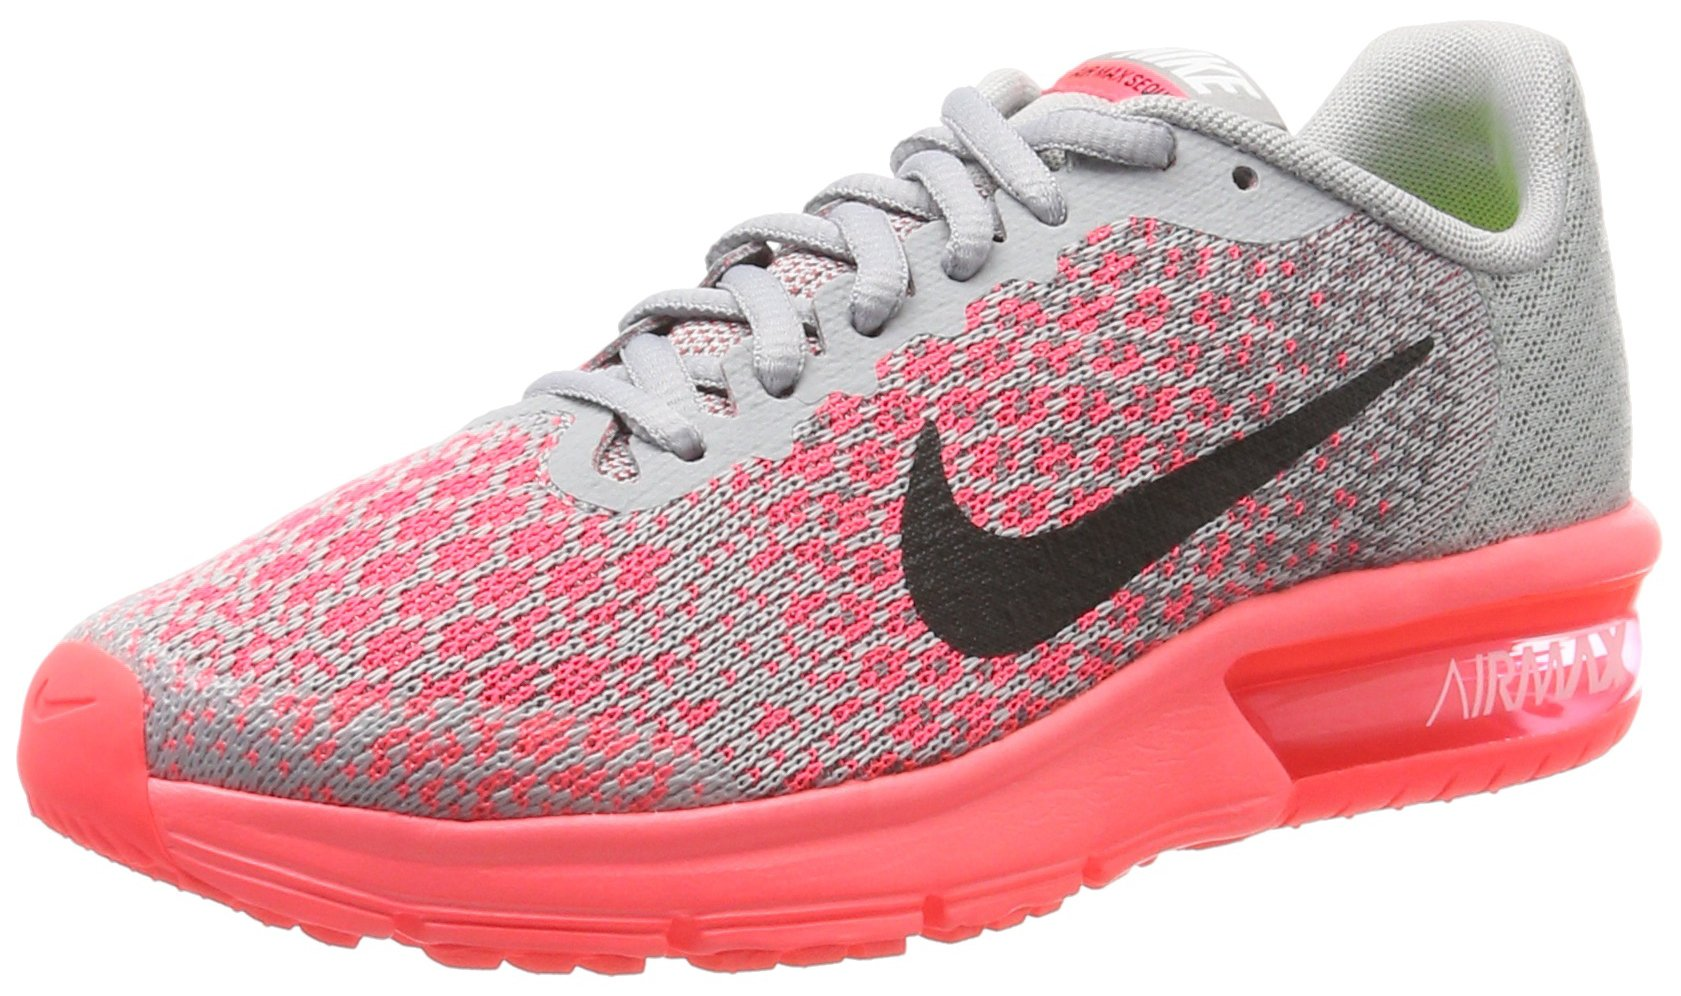 NIKE Air Max Sequent 2 Big Kids Style : 869994 by Nike (Image #1)